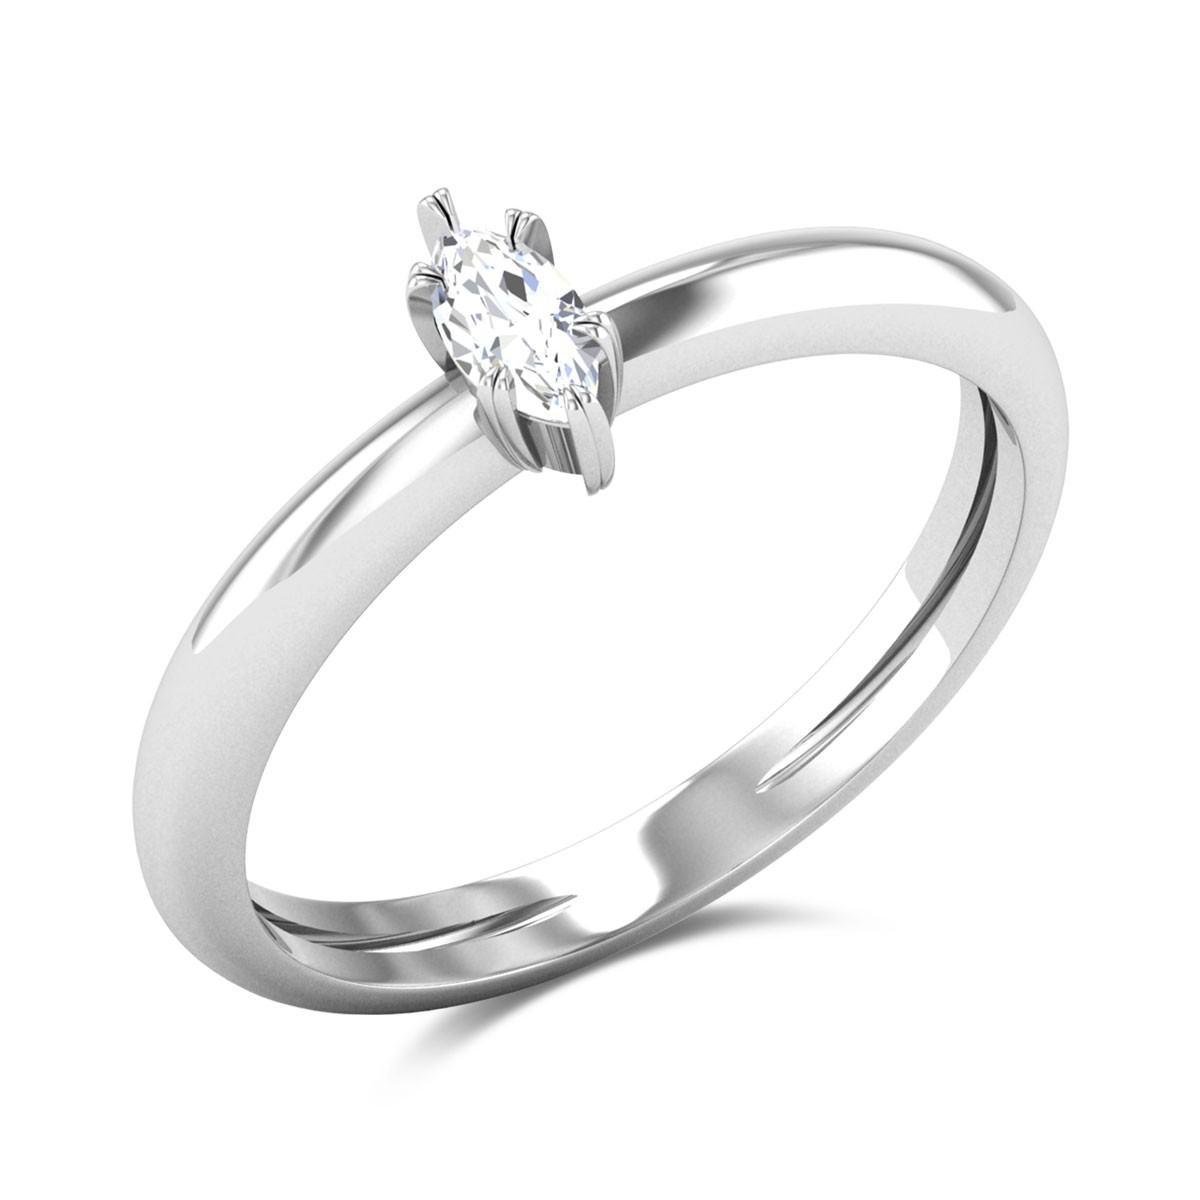 Oswald Marquise Cut Solitaire Ring